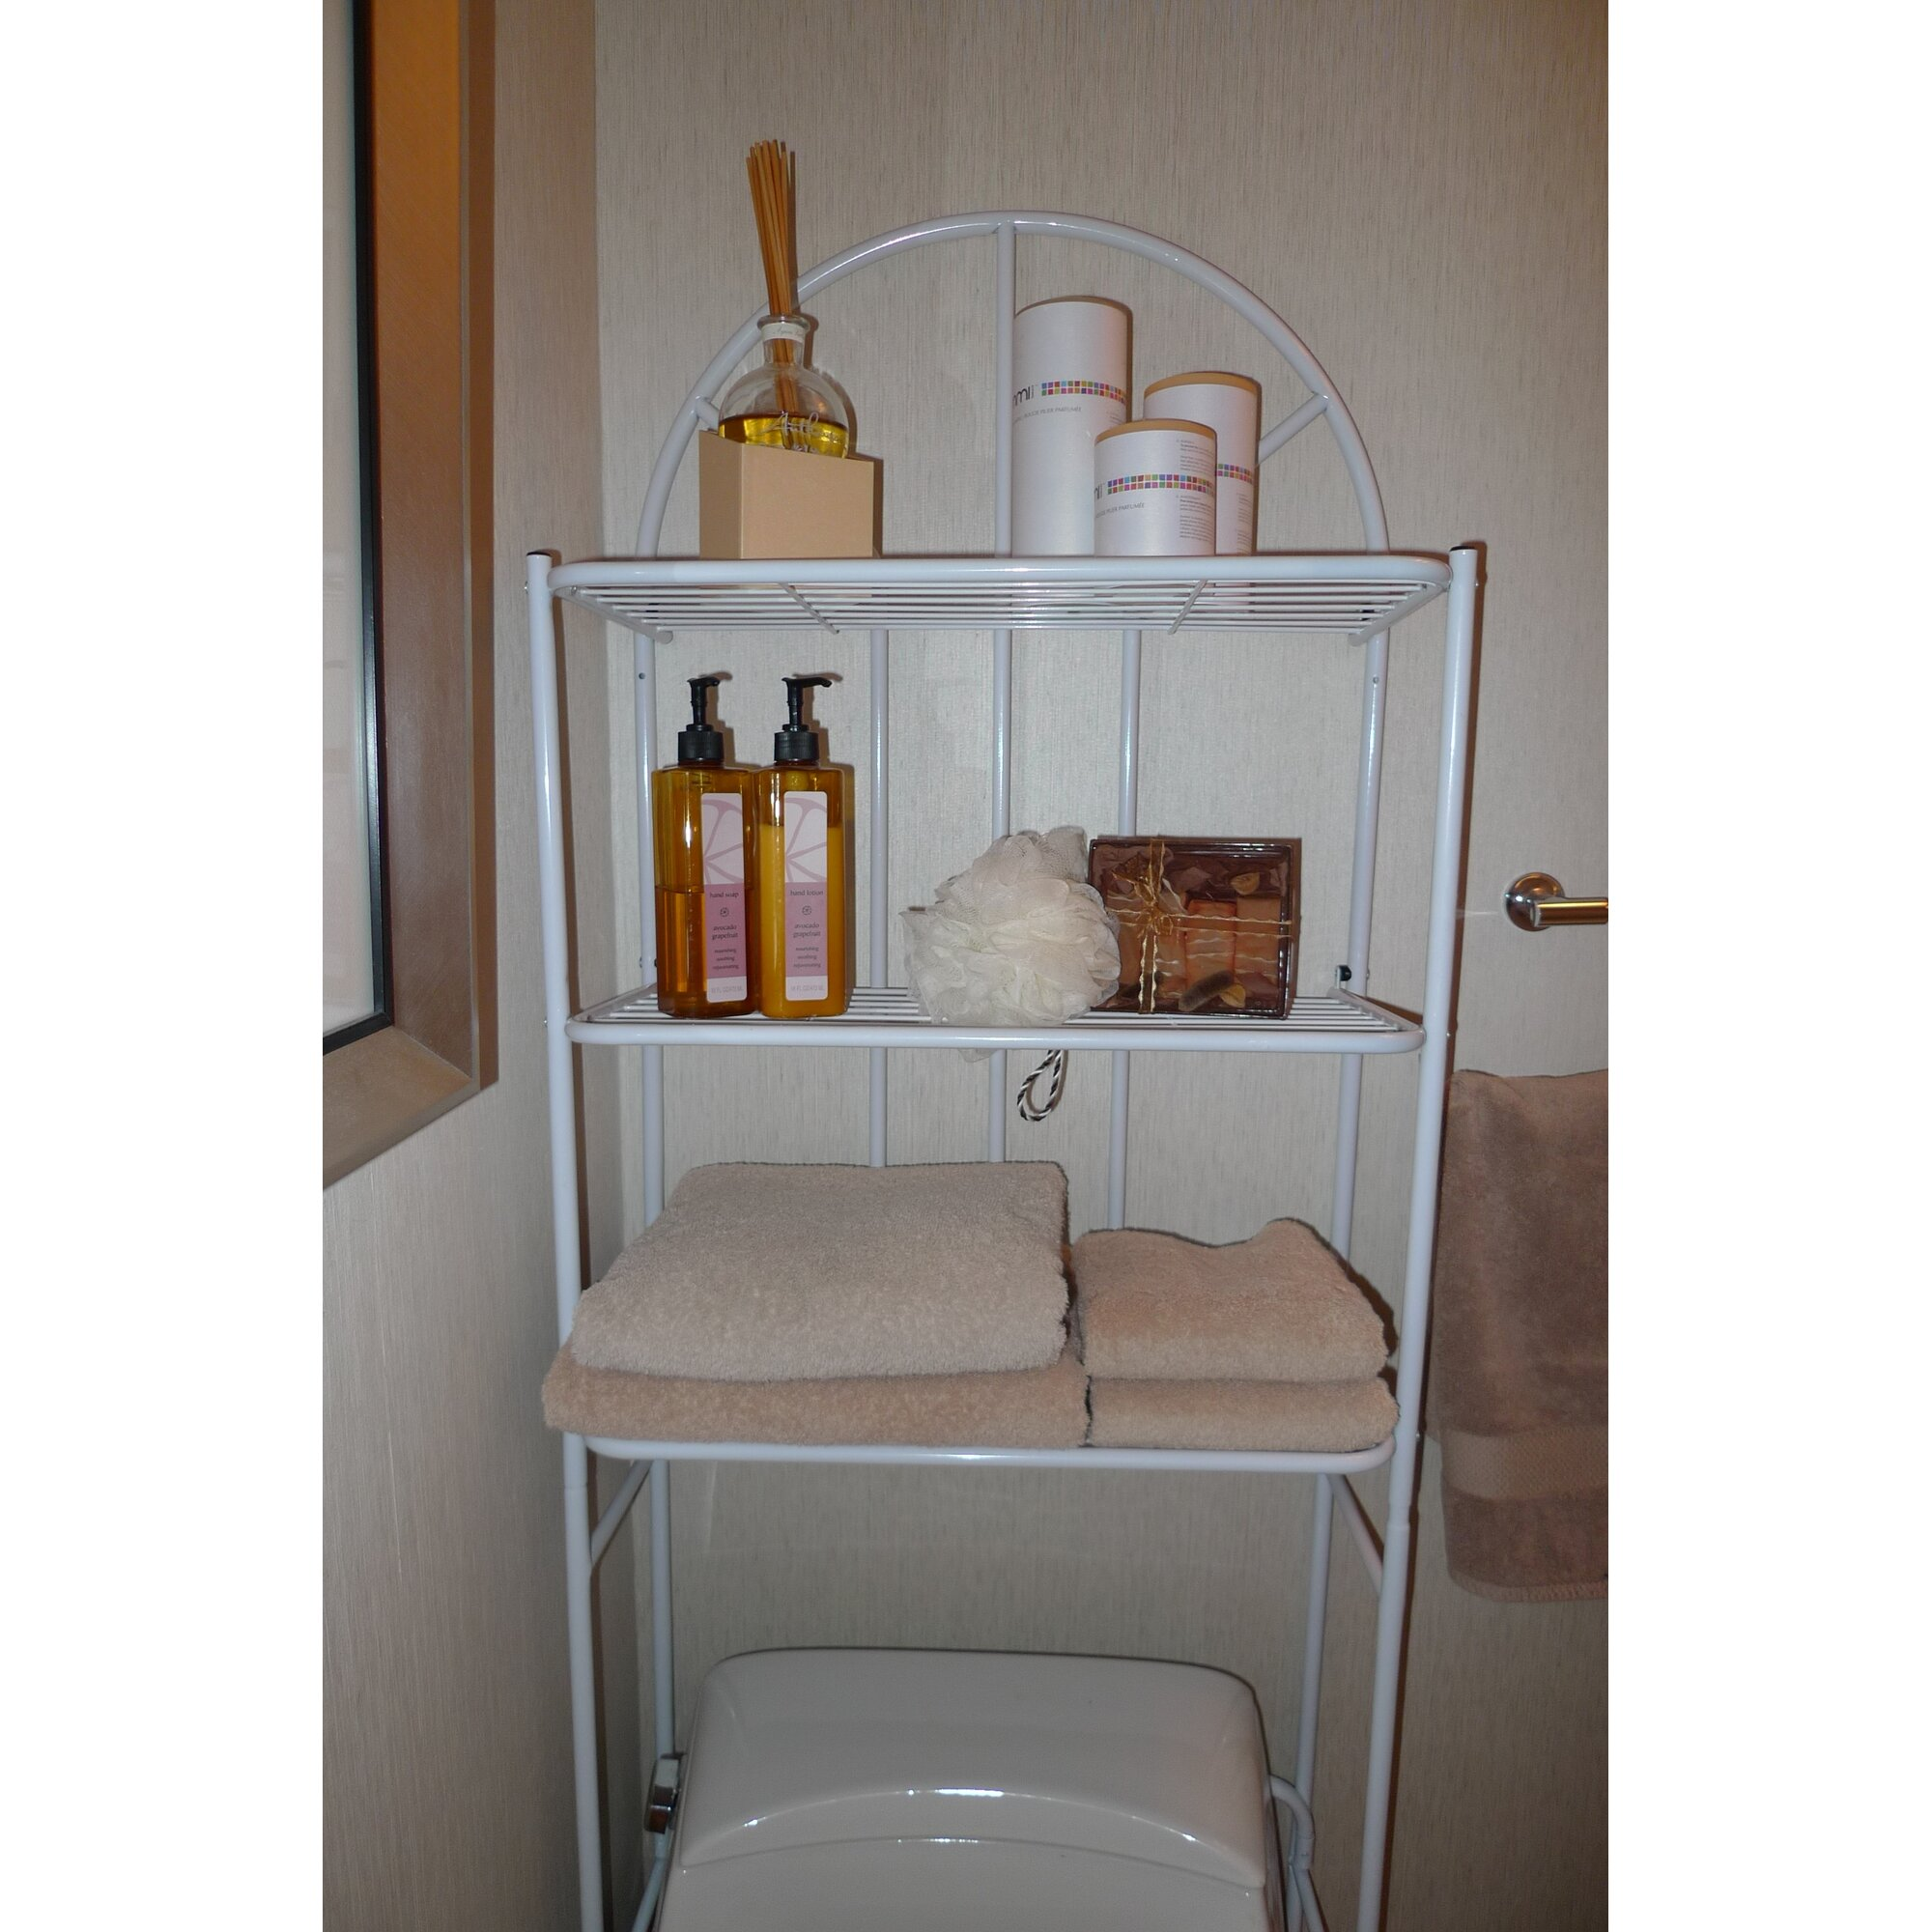 Rebrilliant Free Standing 23 2 Quot W X 69 Quot H Over The Toilet